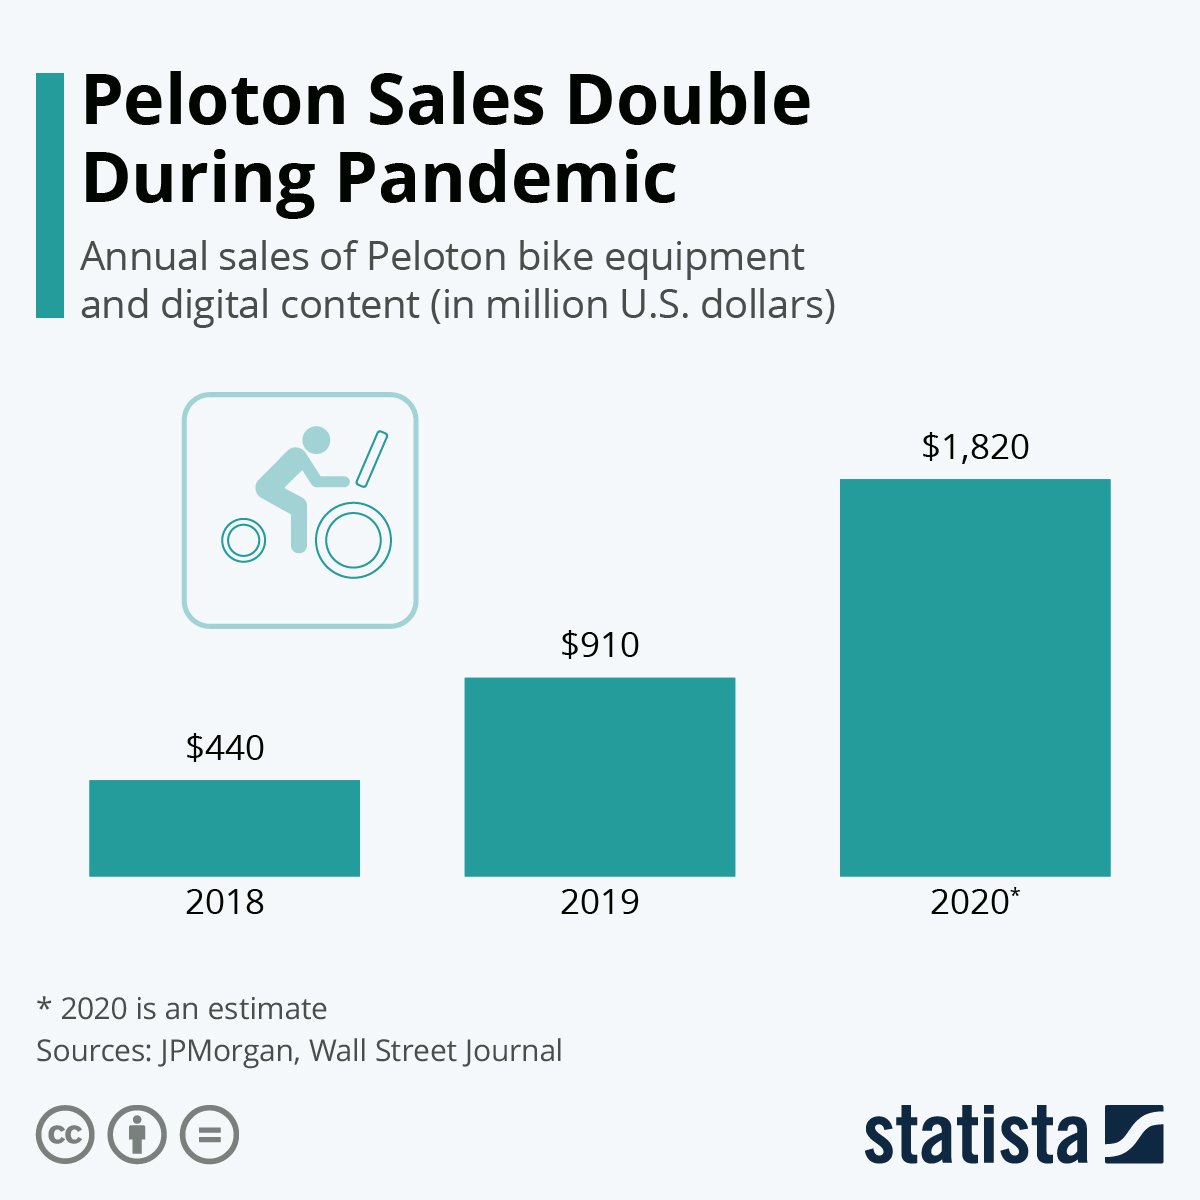 Peloton Sales Double During Pandemic #infographic